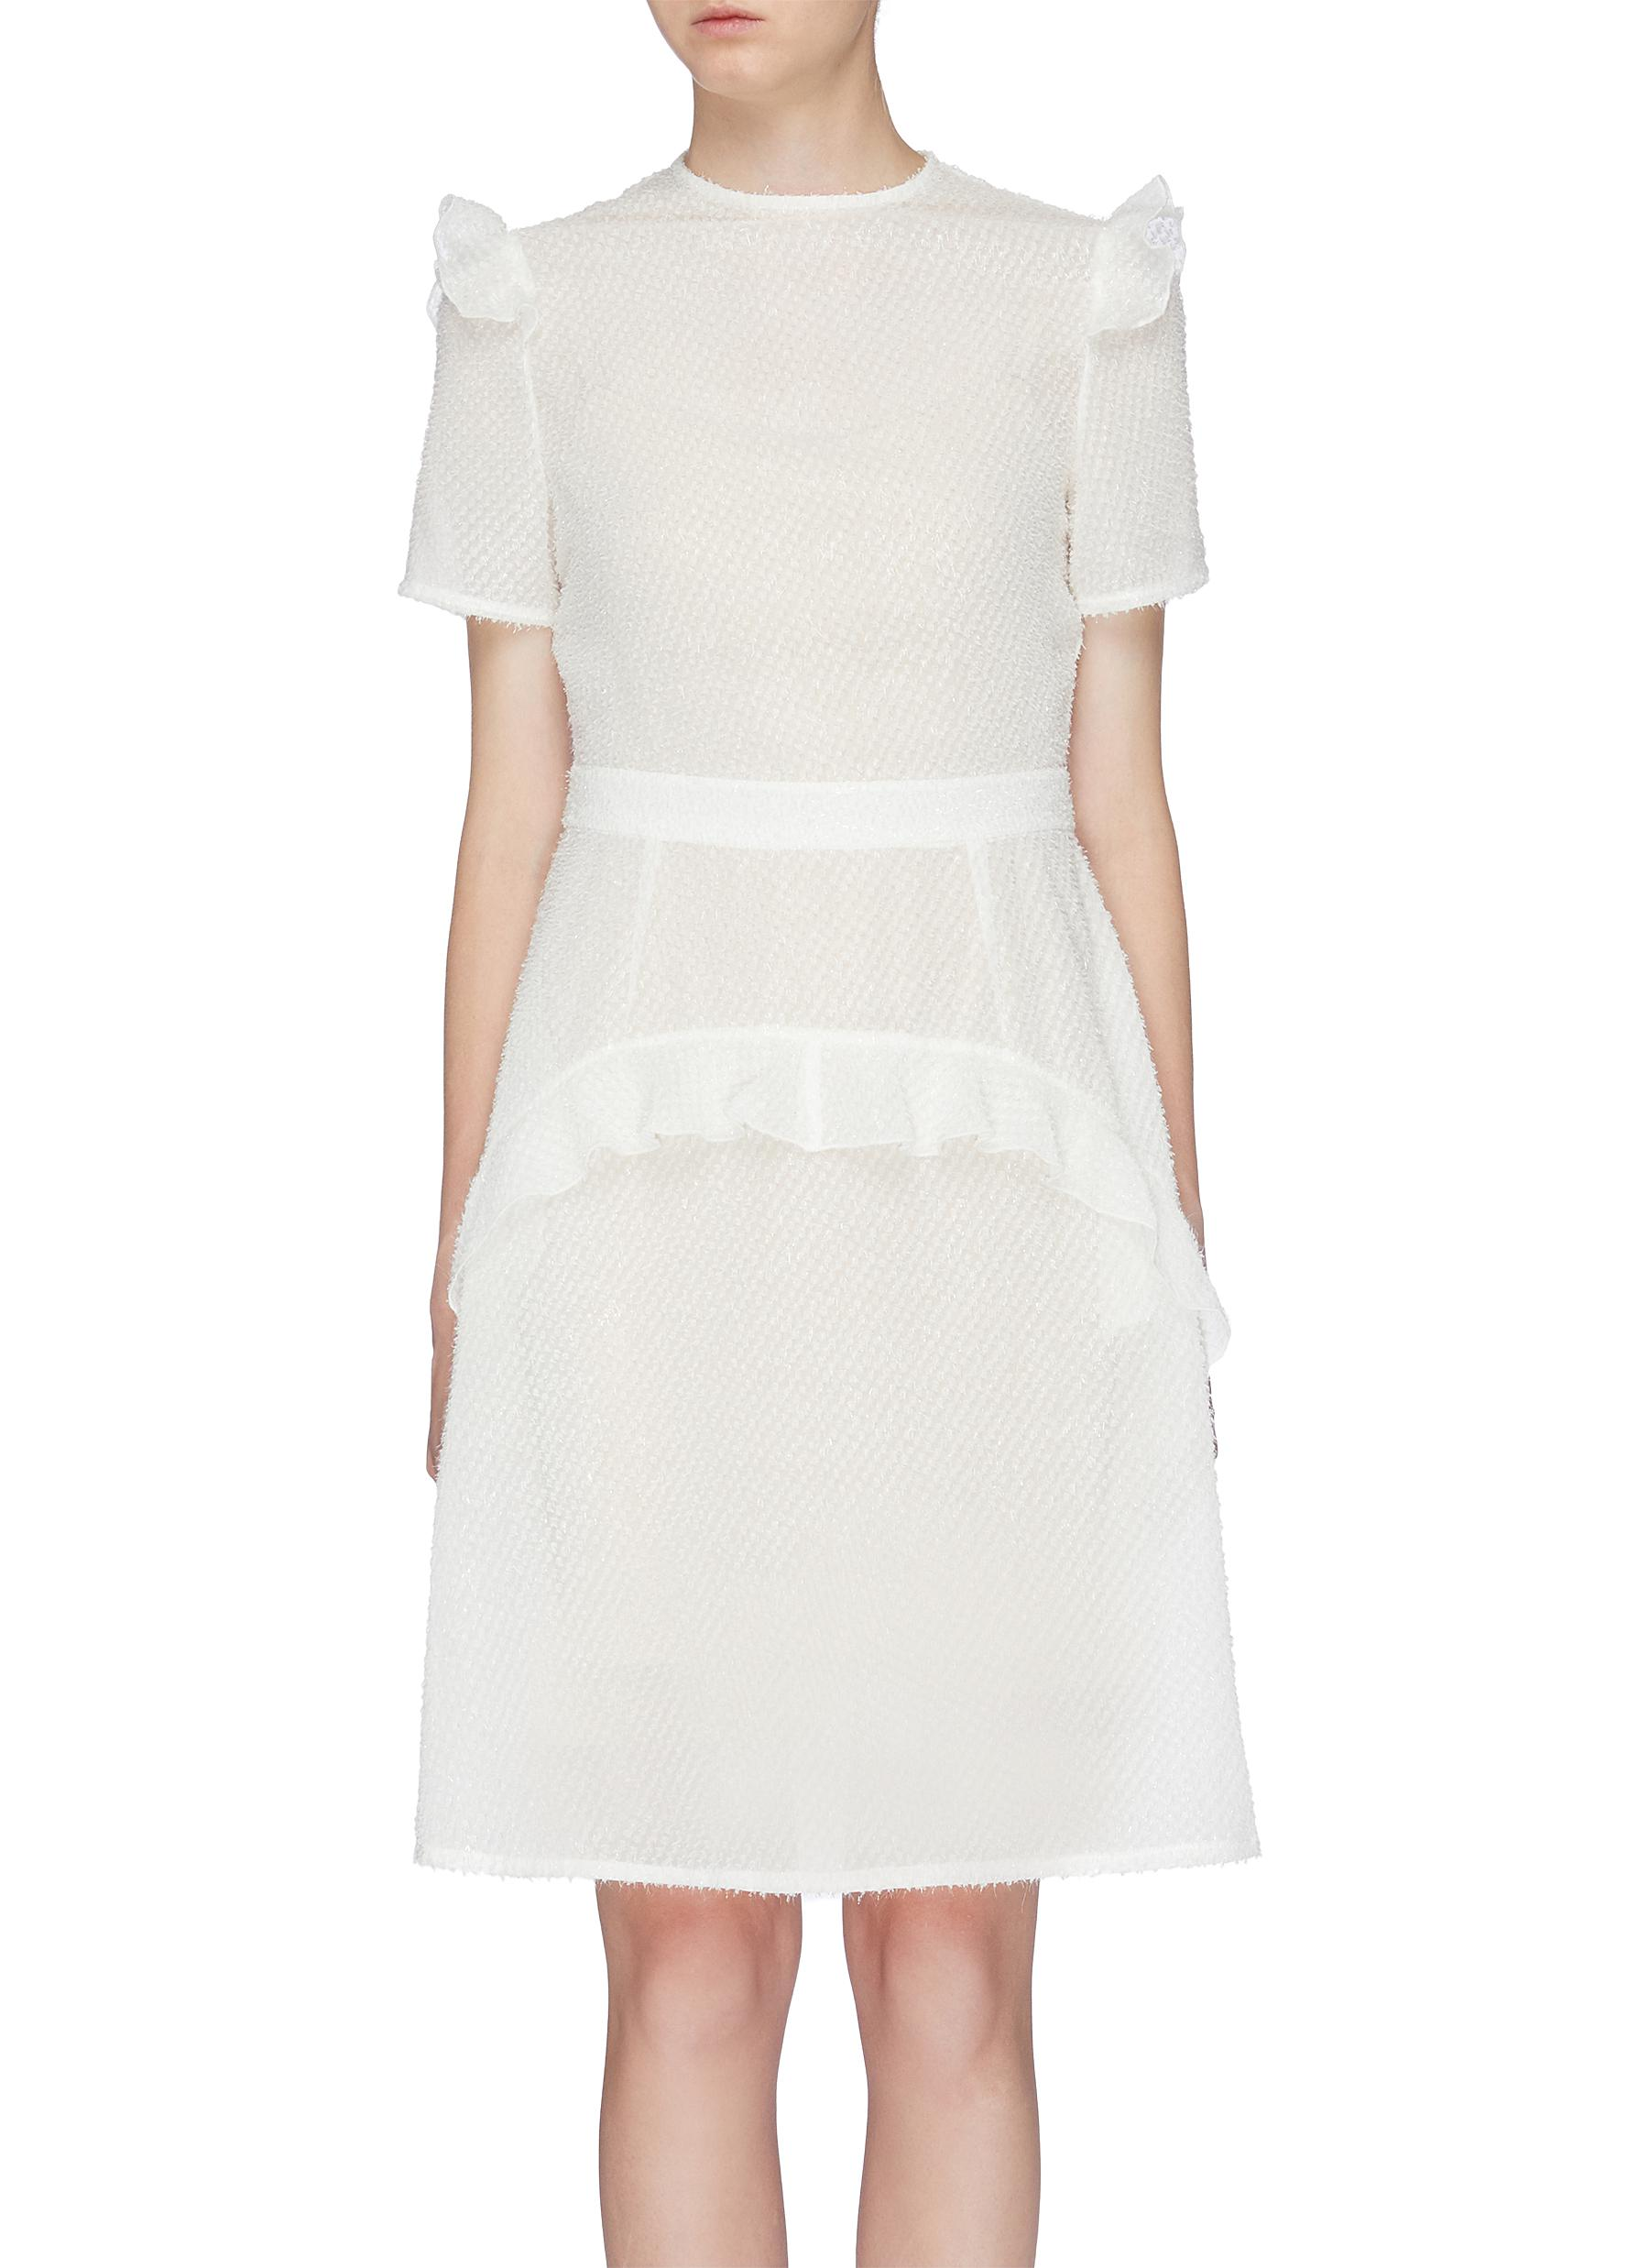 Ruffle tiered textured dress by Jonathan Liang